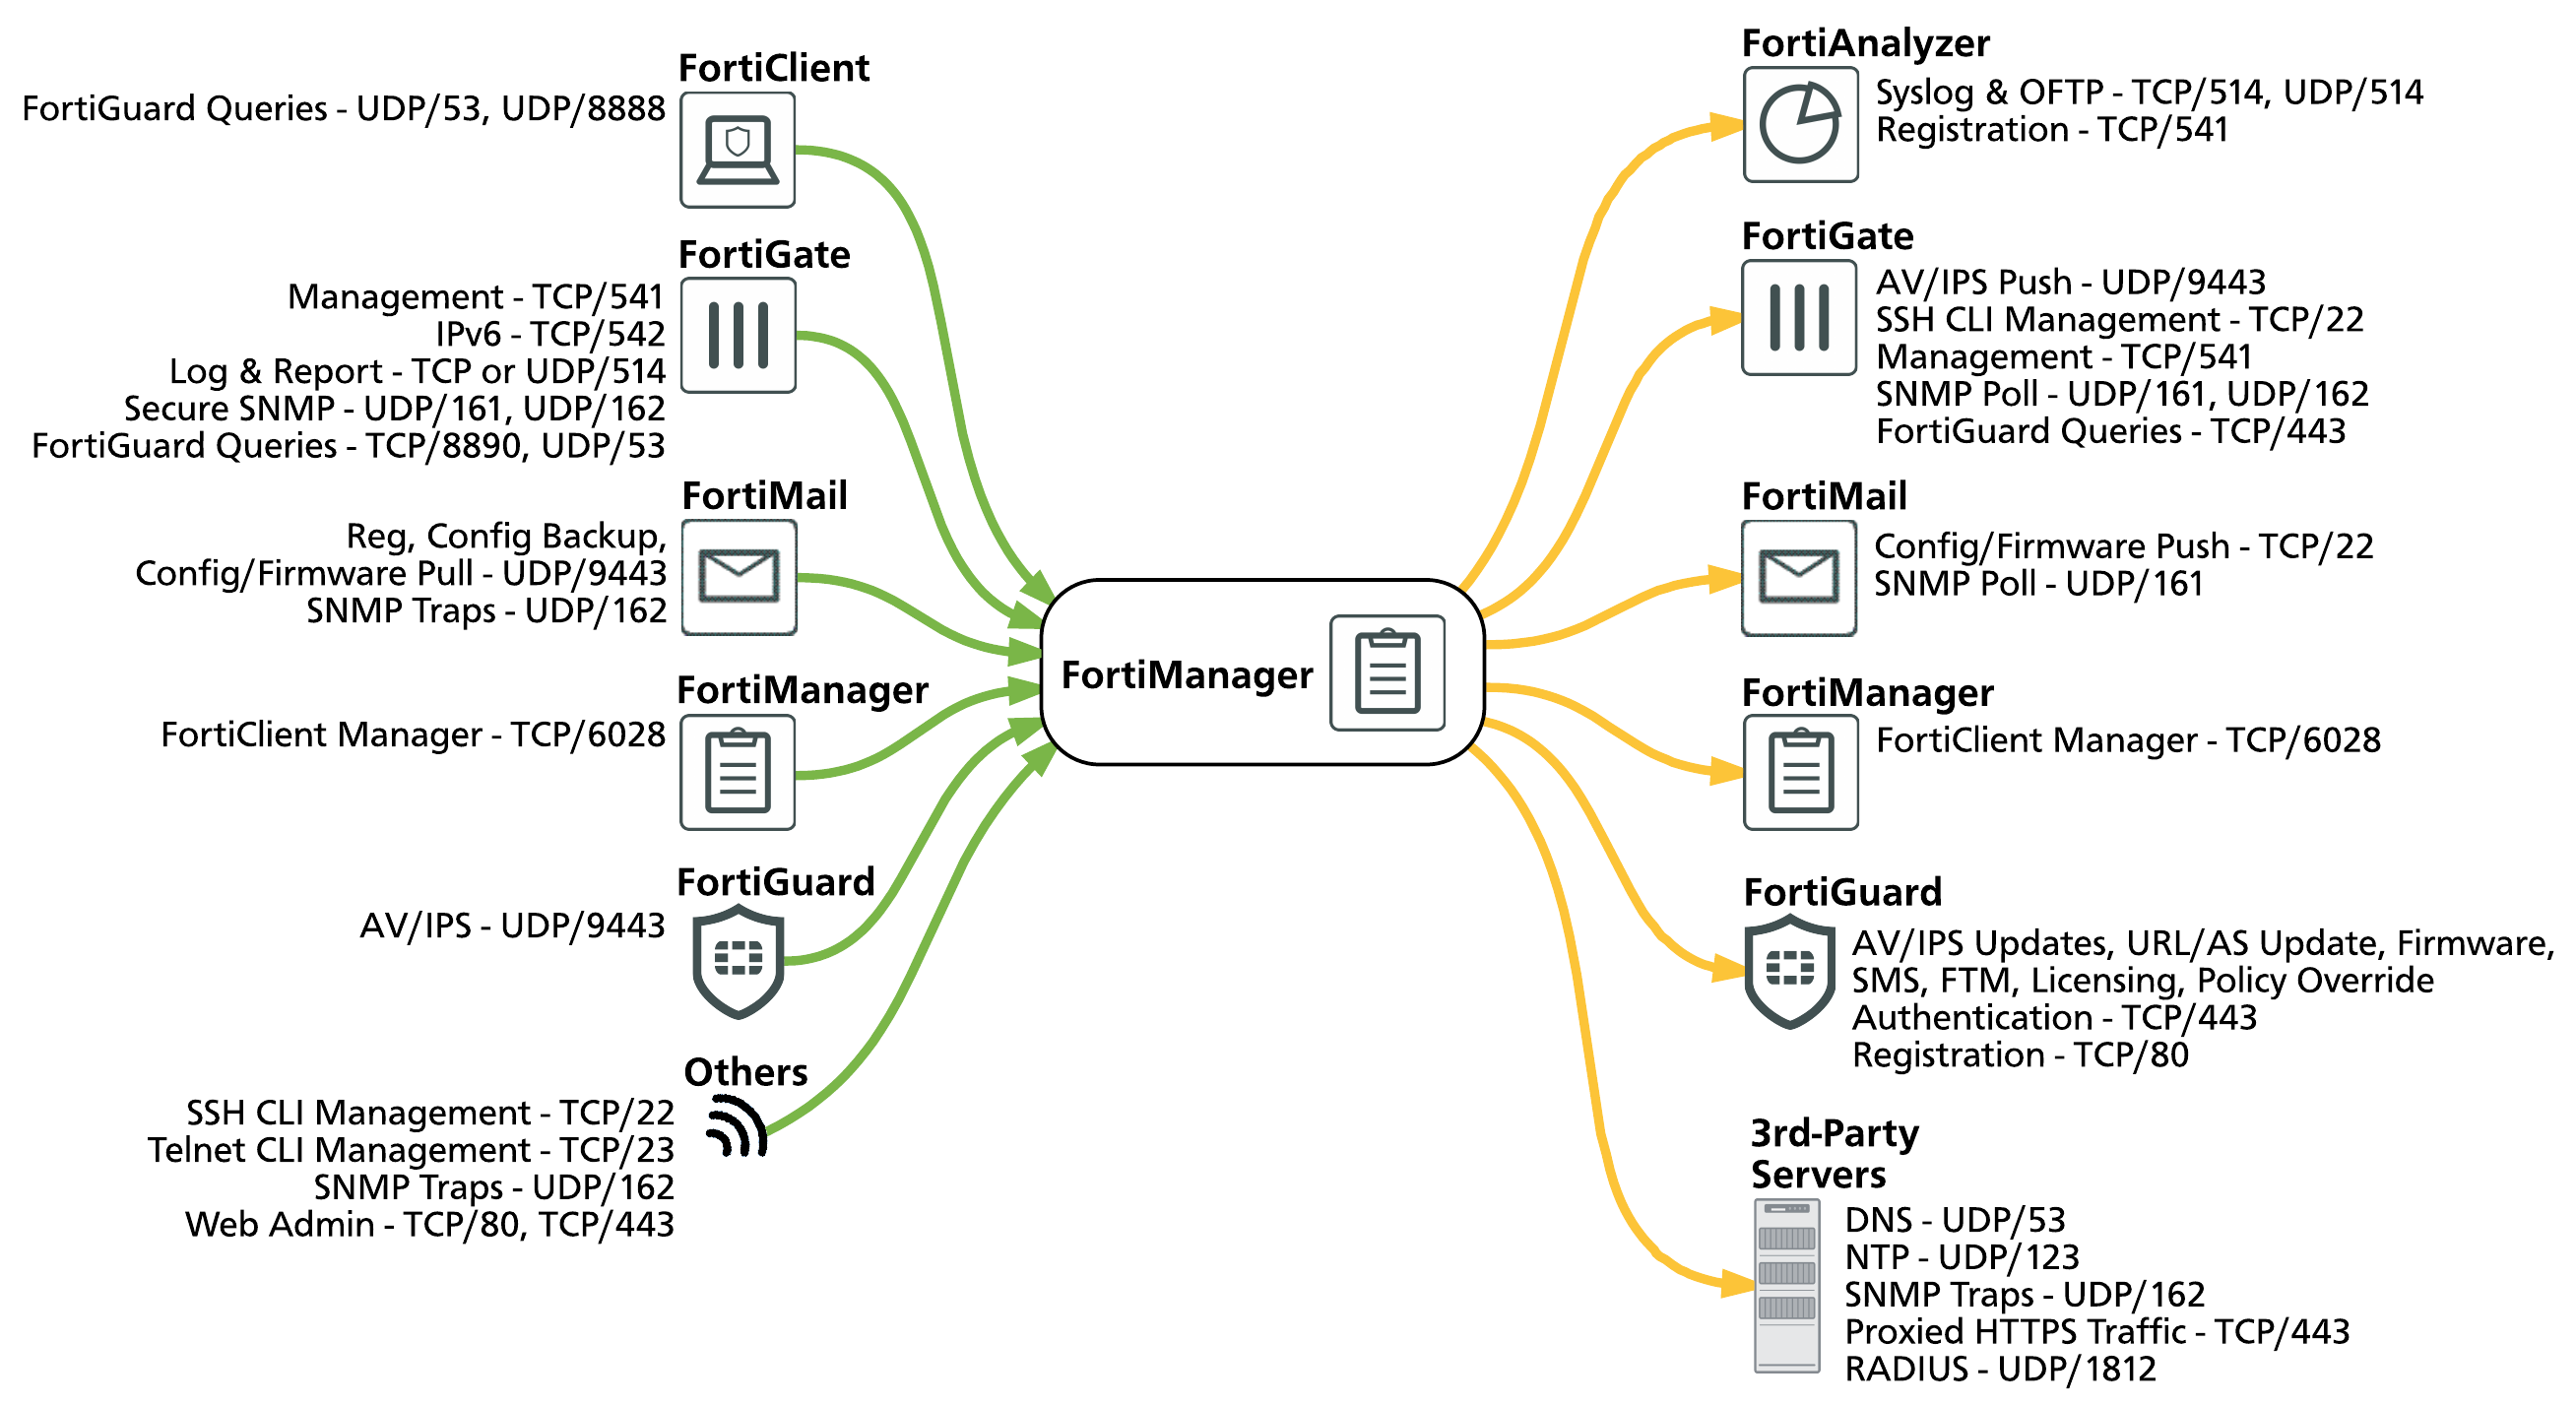 FortiManager Open Ports